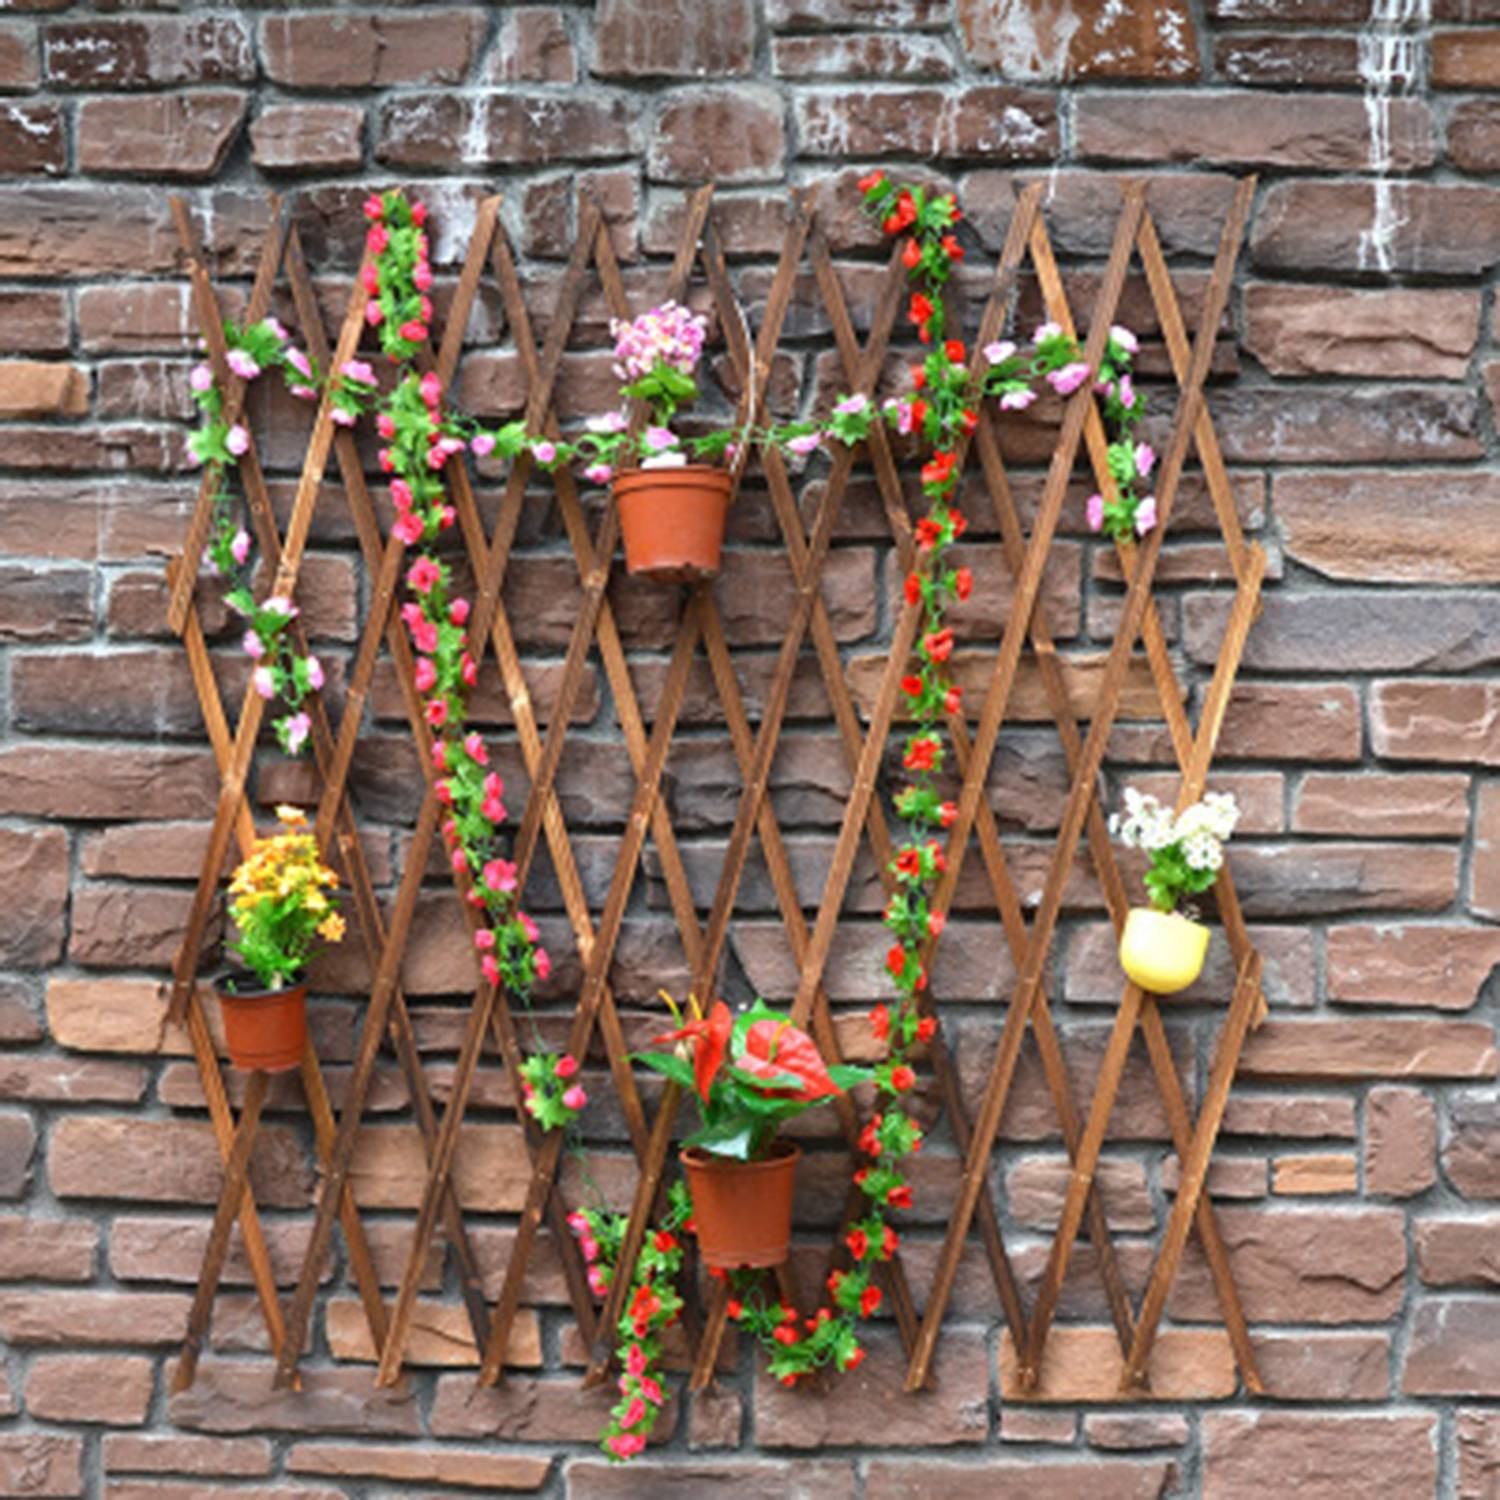 Expanding Wood Garden Wall Fence Panel Plant Climb Trellis Support Decorative Garden Fence Home Yard Decoration Shopee Indonesia